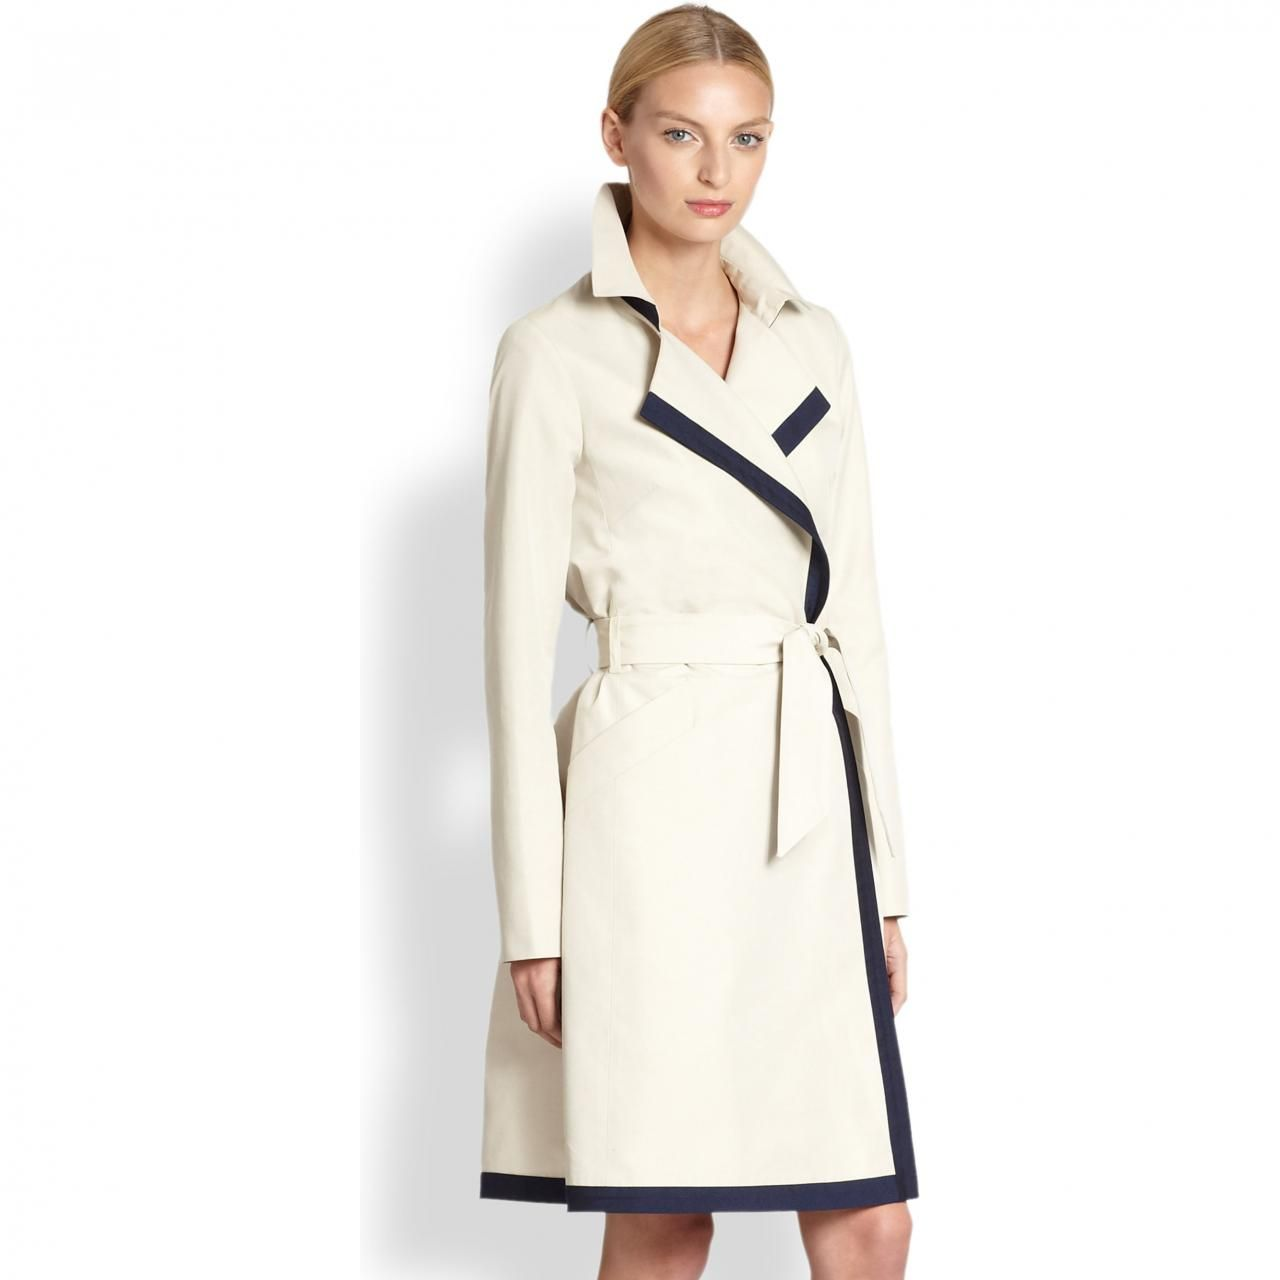 Martin Grant Contrast Trimmed Trench Coat as seen on Anne Hathaway in The Intern...her whole wardrobe was perfect!